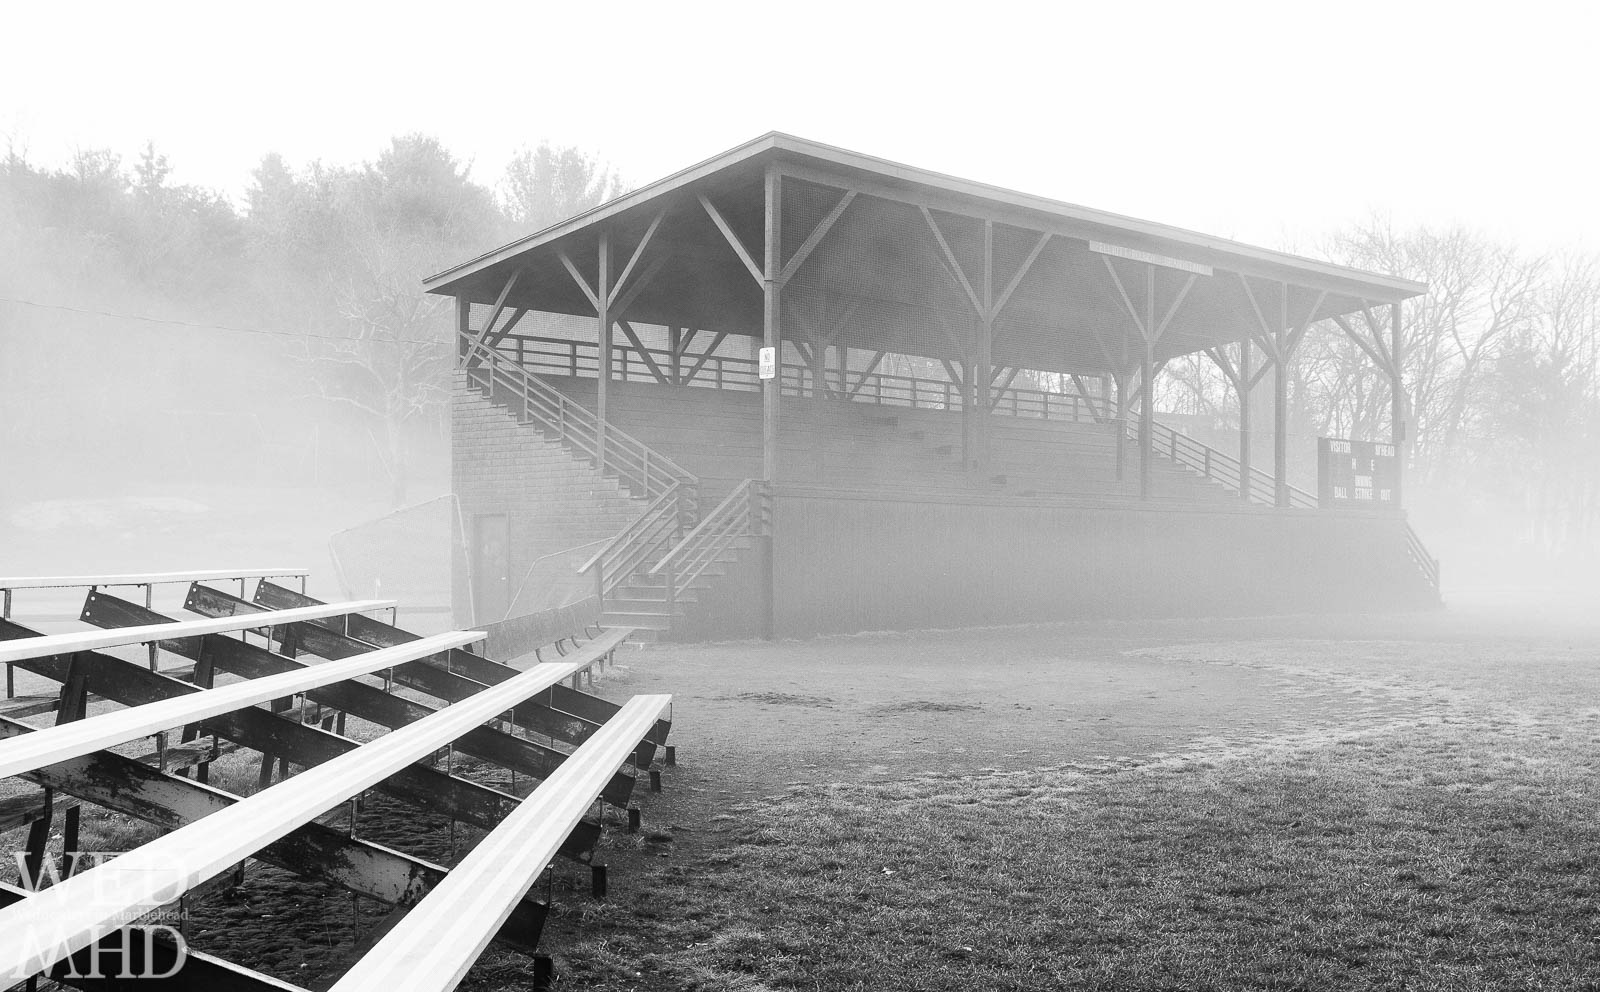 fog descends on seaside park and the bleachers